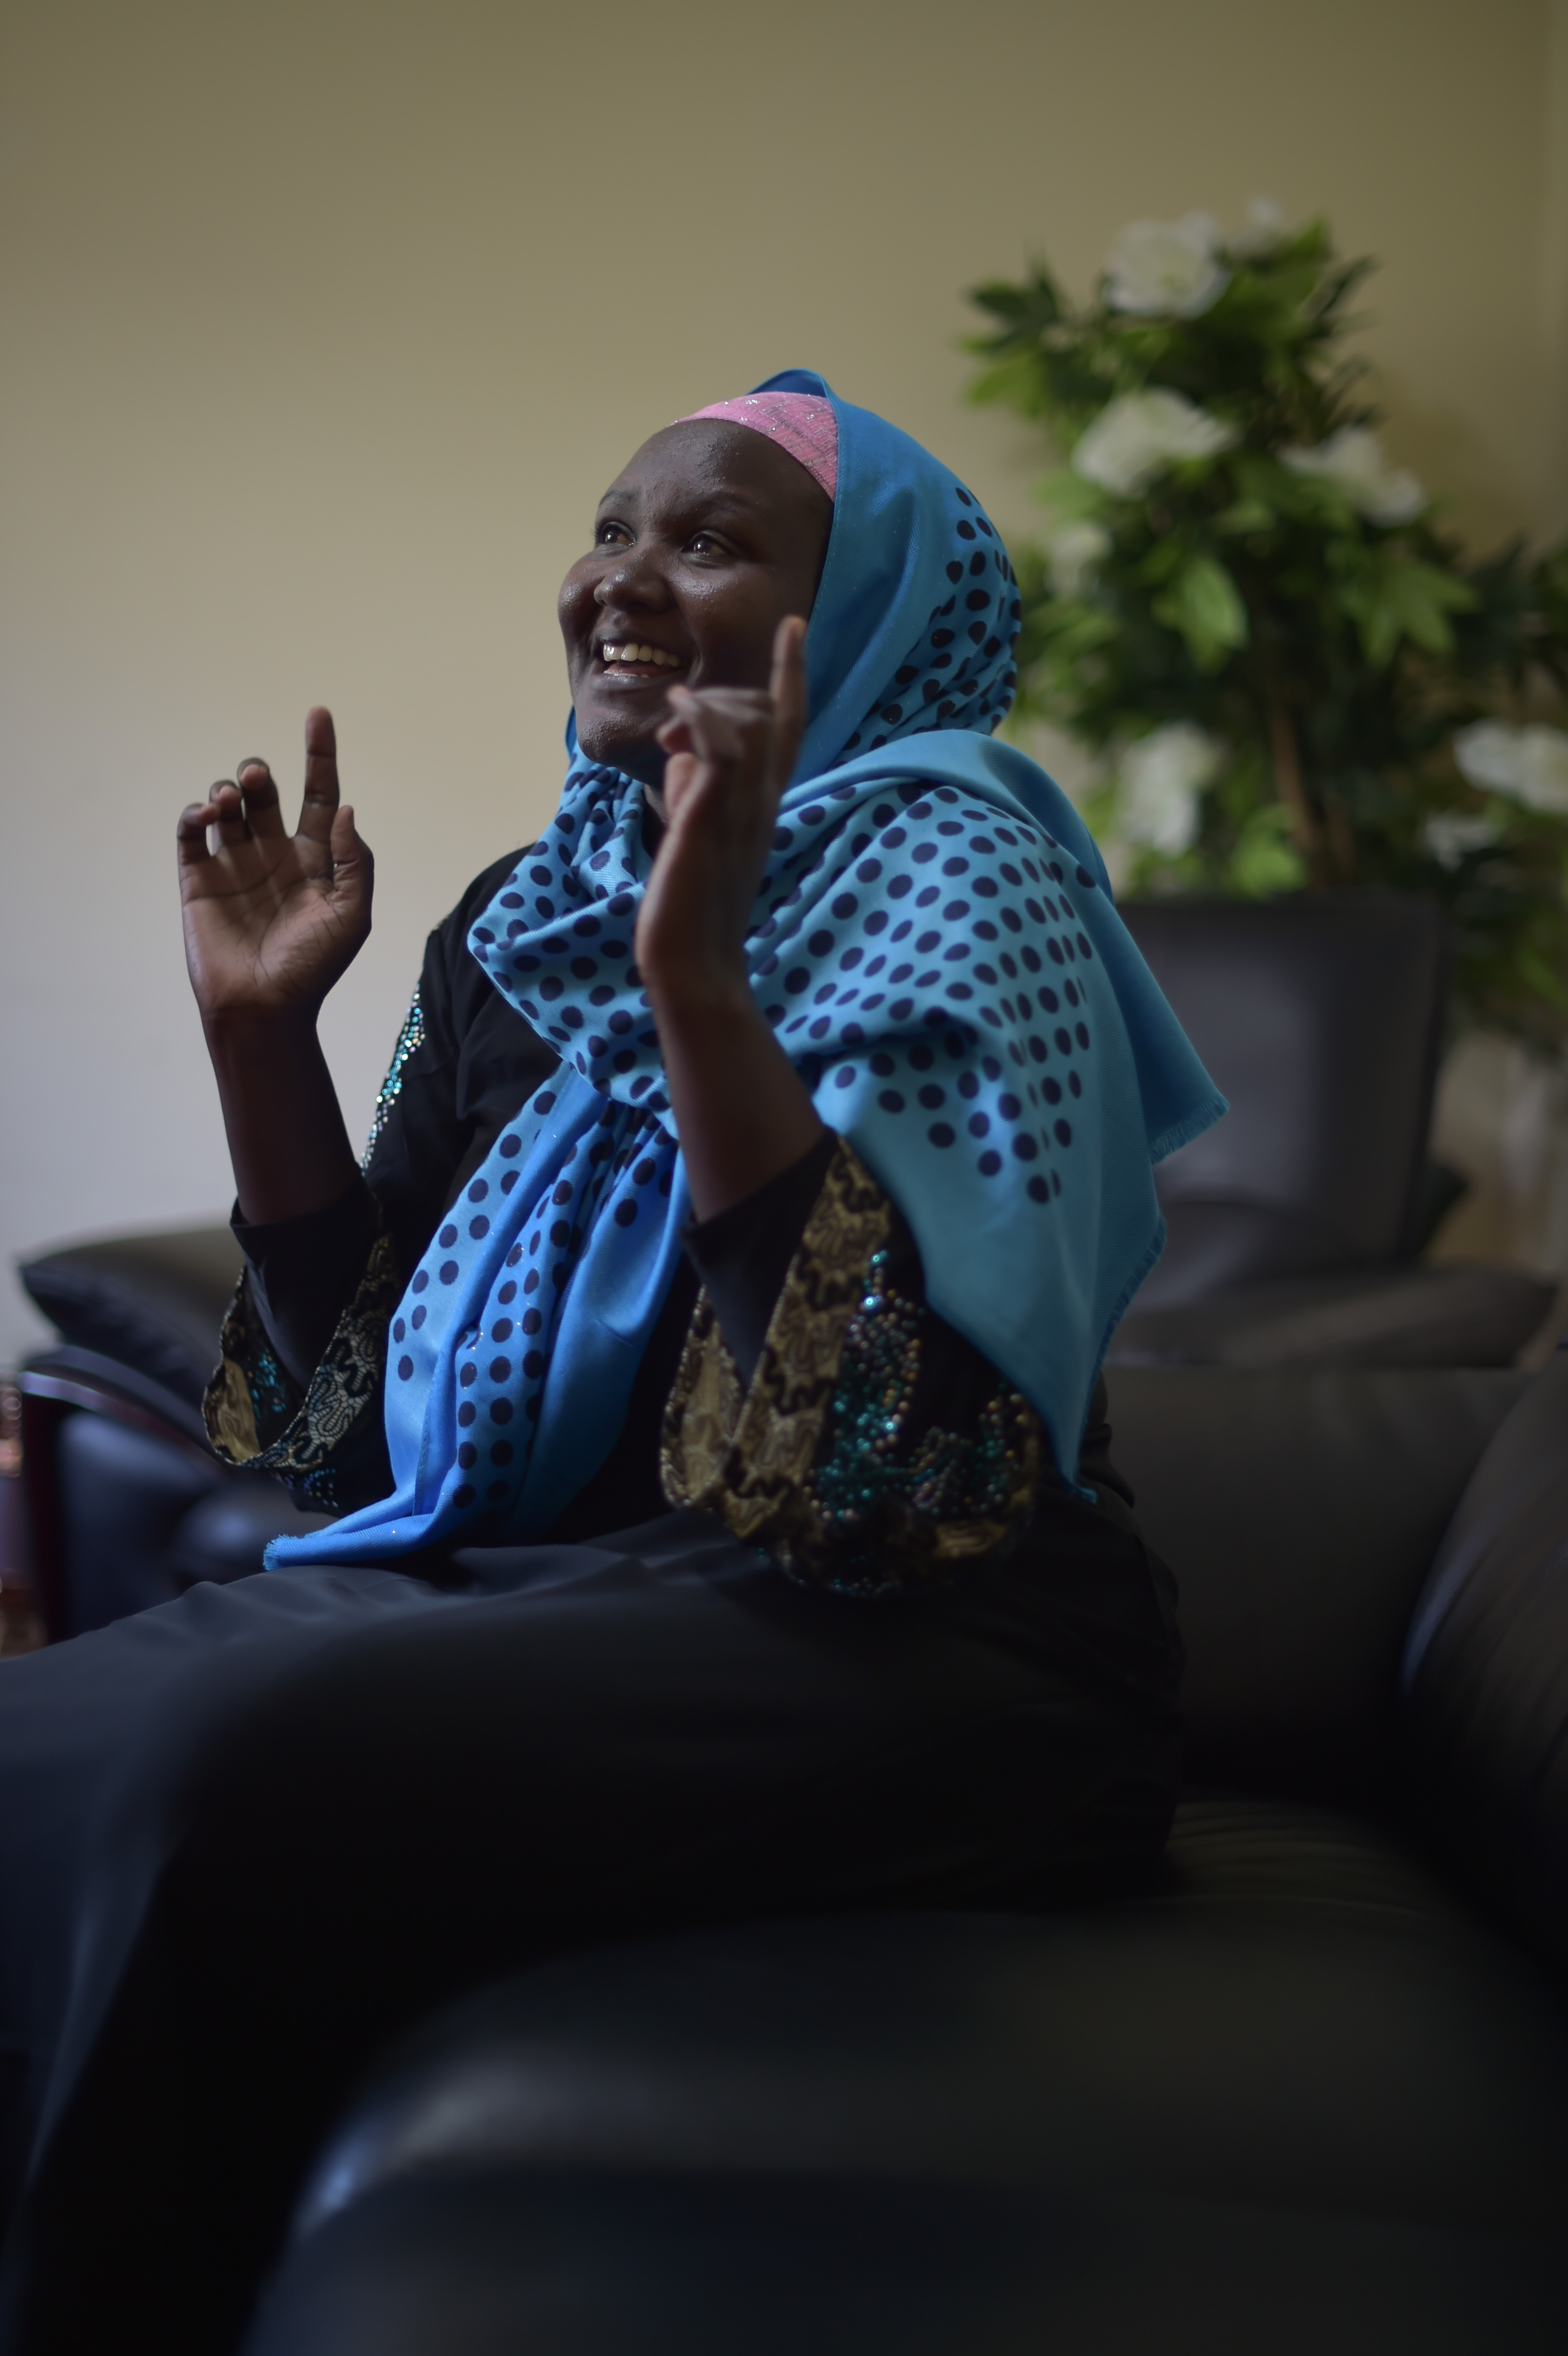 Loise Njoki, a Kenyan who was kept hostage by militants in Somalia for over two years, recounts parts of her ordeal at the Kenyan Embassy in Mogadishu, Somalia, on October 31, 2016. She will return to Kenya tomorrow where she will be reunited with her daughter and the rest of her family. AMISOM Photo / Tobin Jones